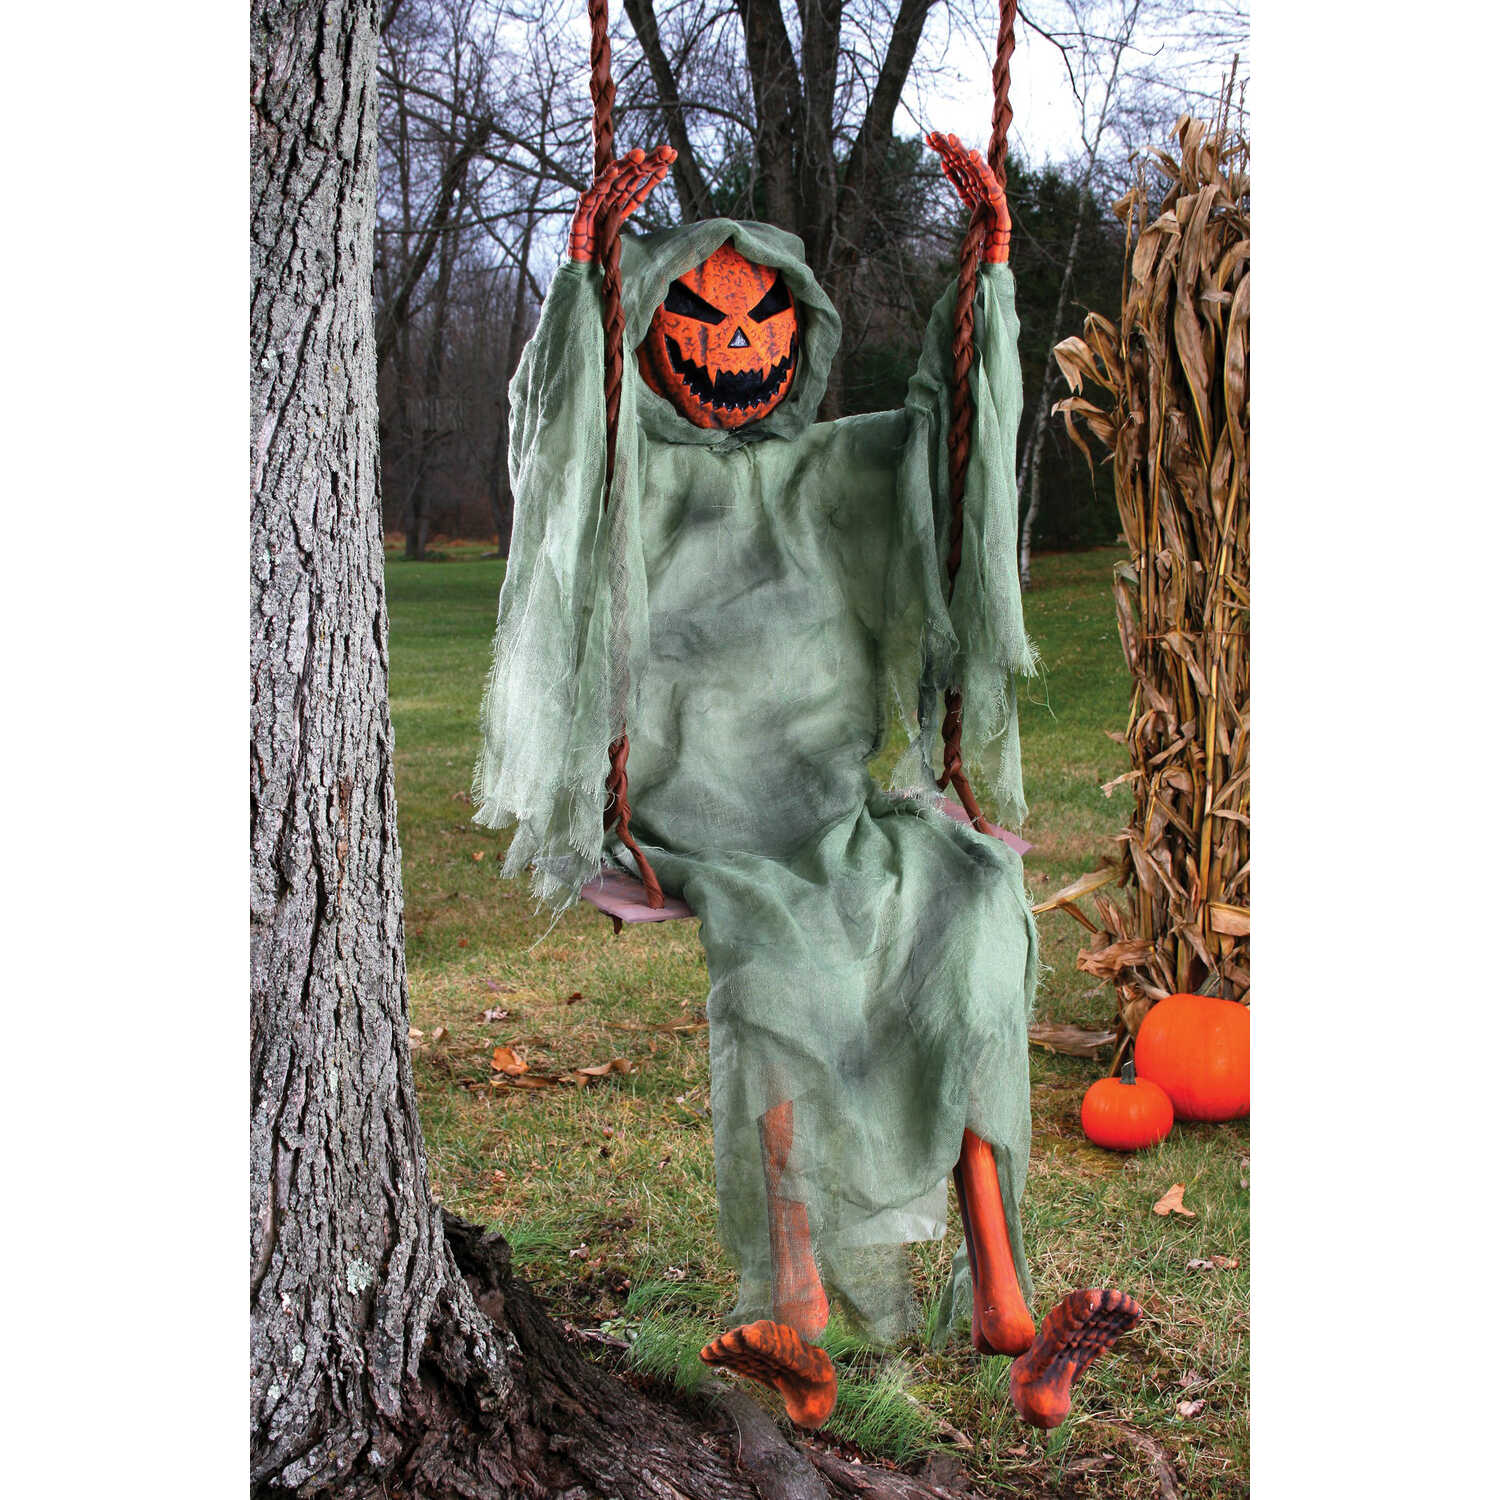 Fun World  Swinging Pumpkin Ghost  Halloween Decoration  18 in. H x 6 in. W x 60 in. L 1 pk